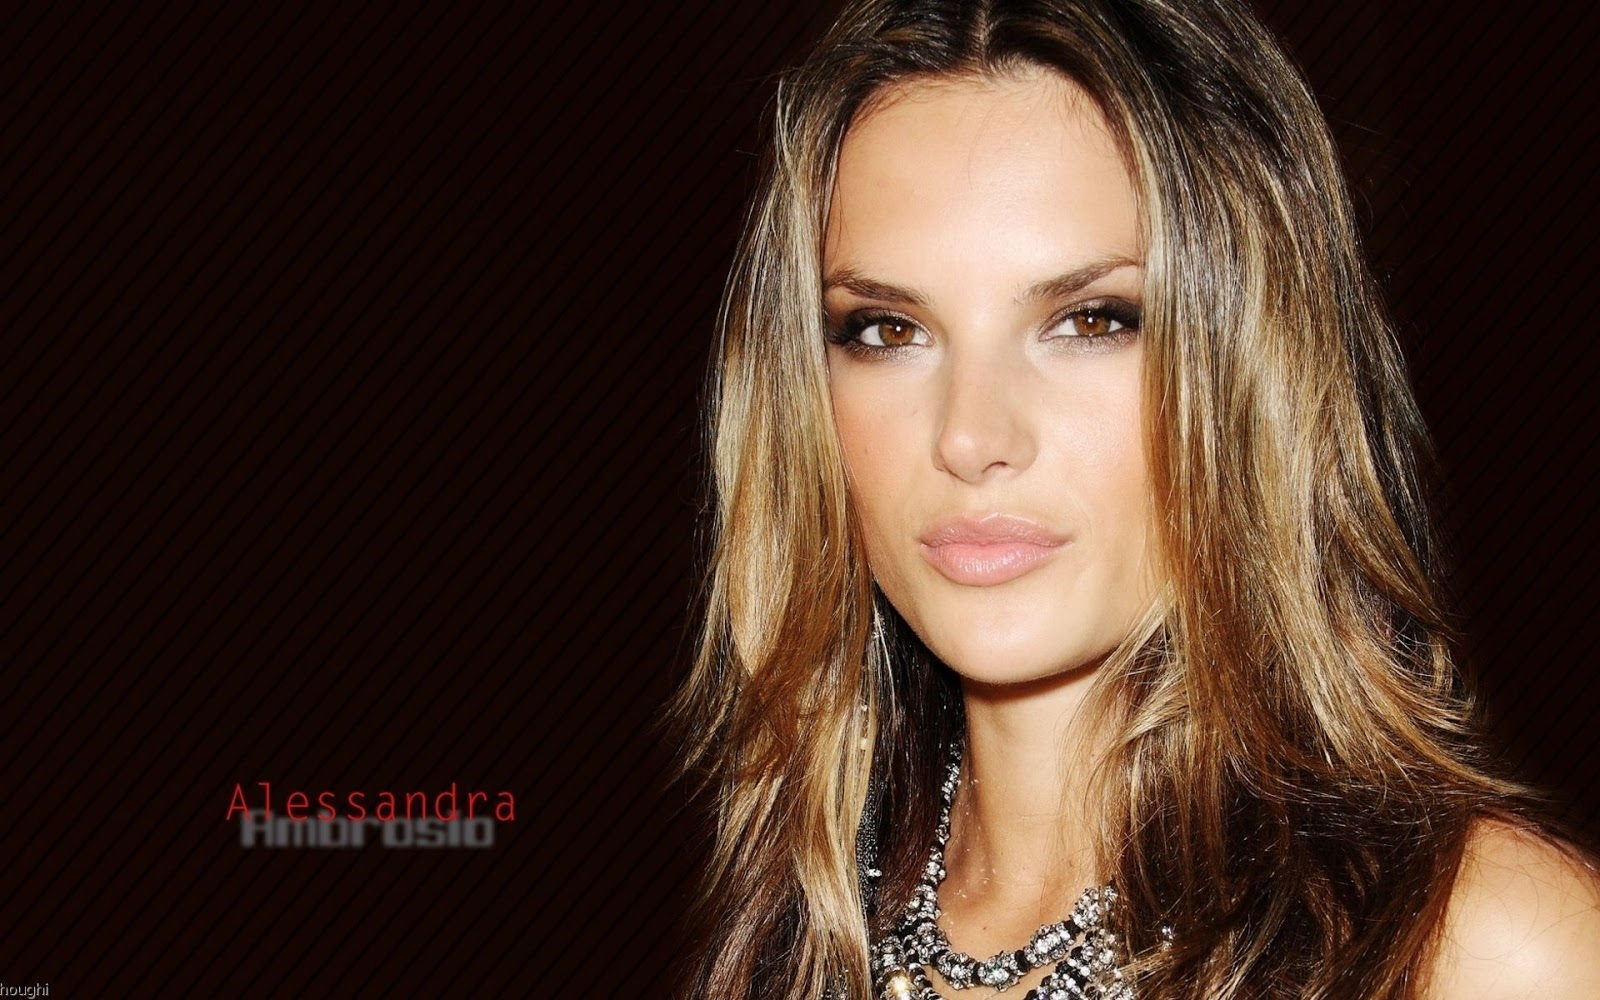 alessandra ambrosio wallpapers - photo #10